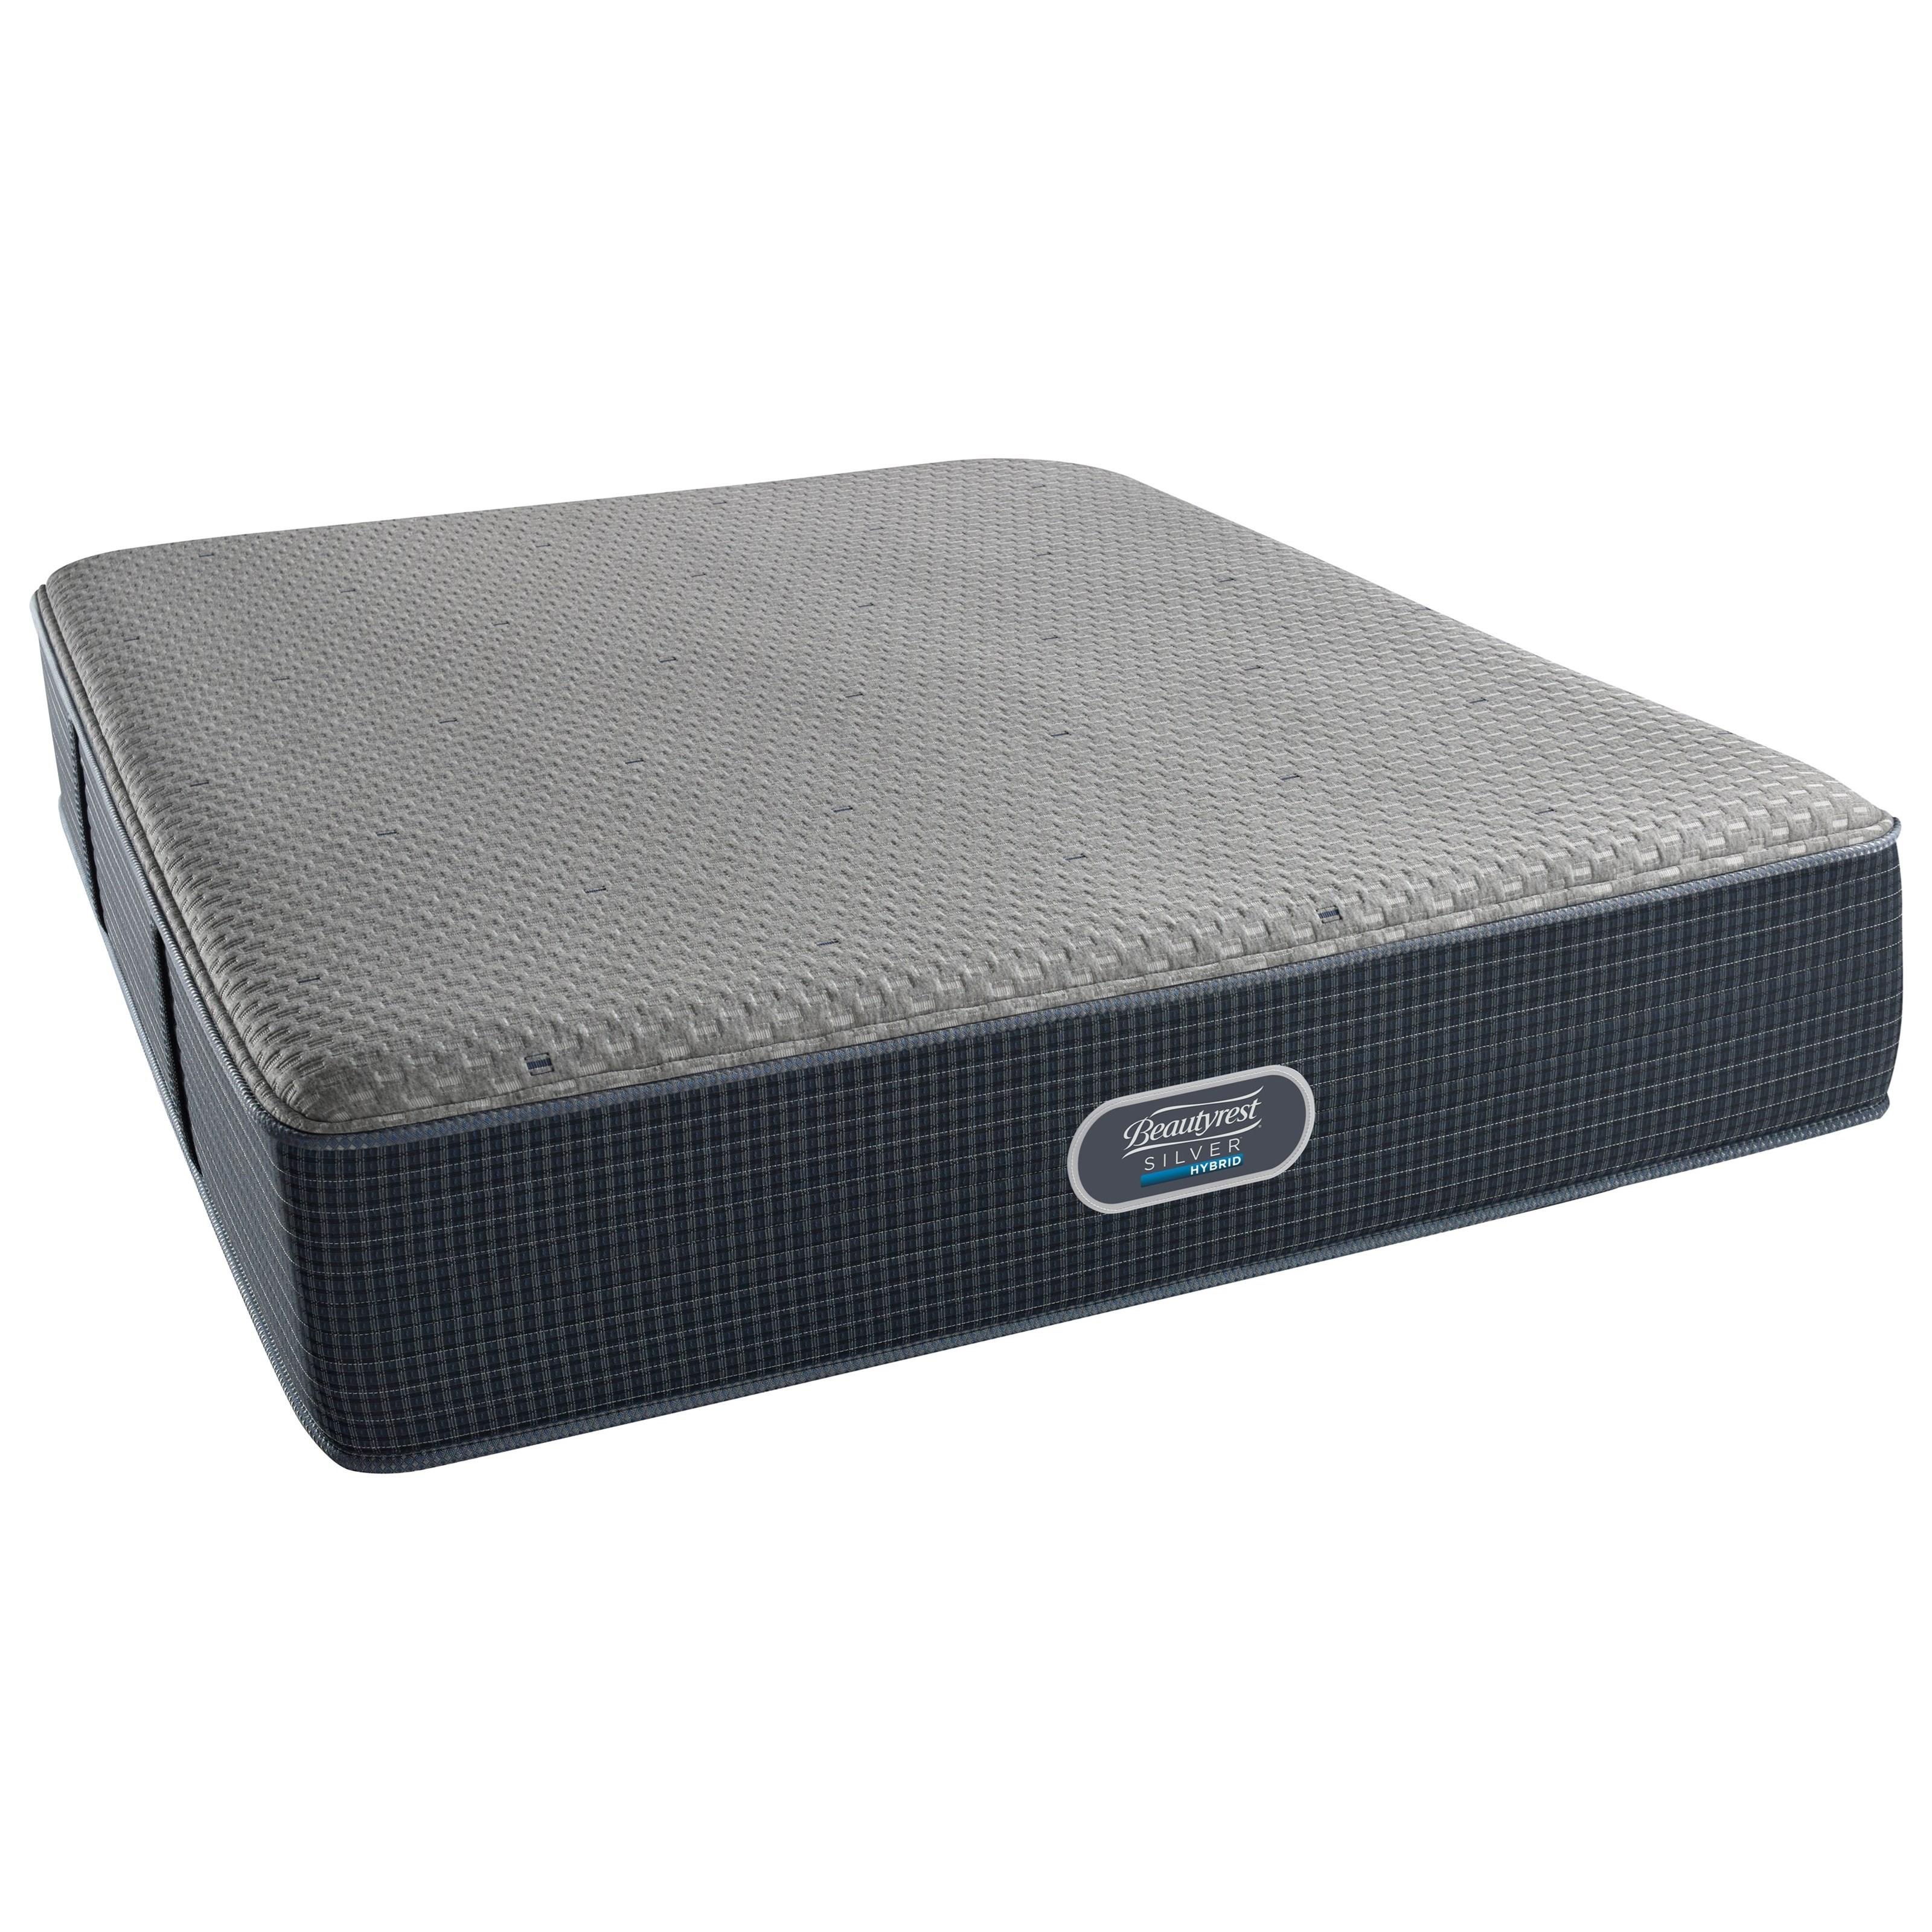 Beautyrest Silver Split Cal King Mattress